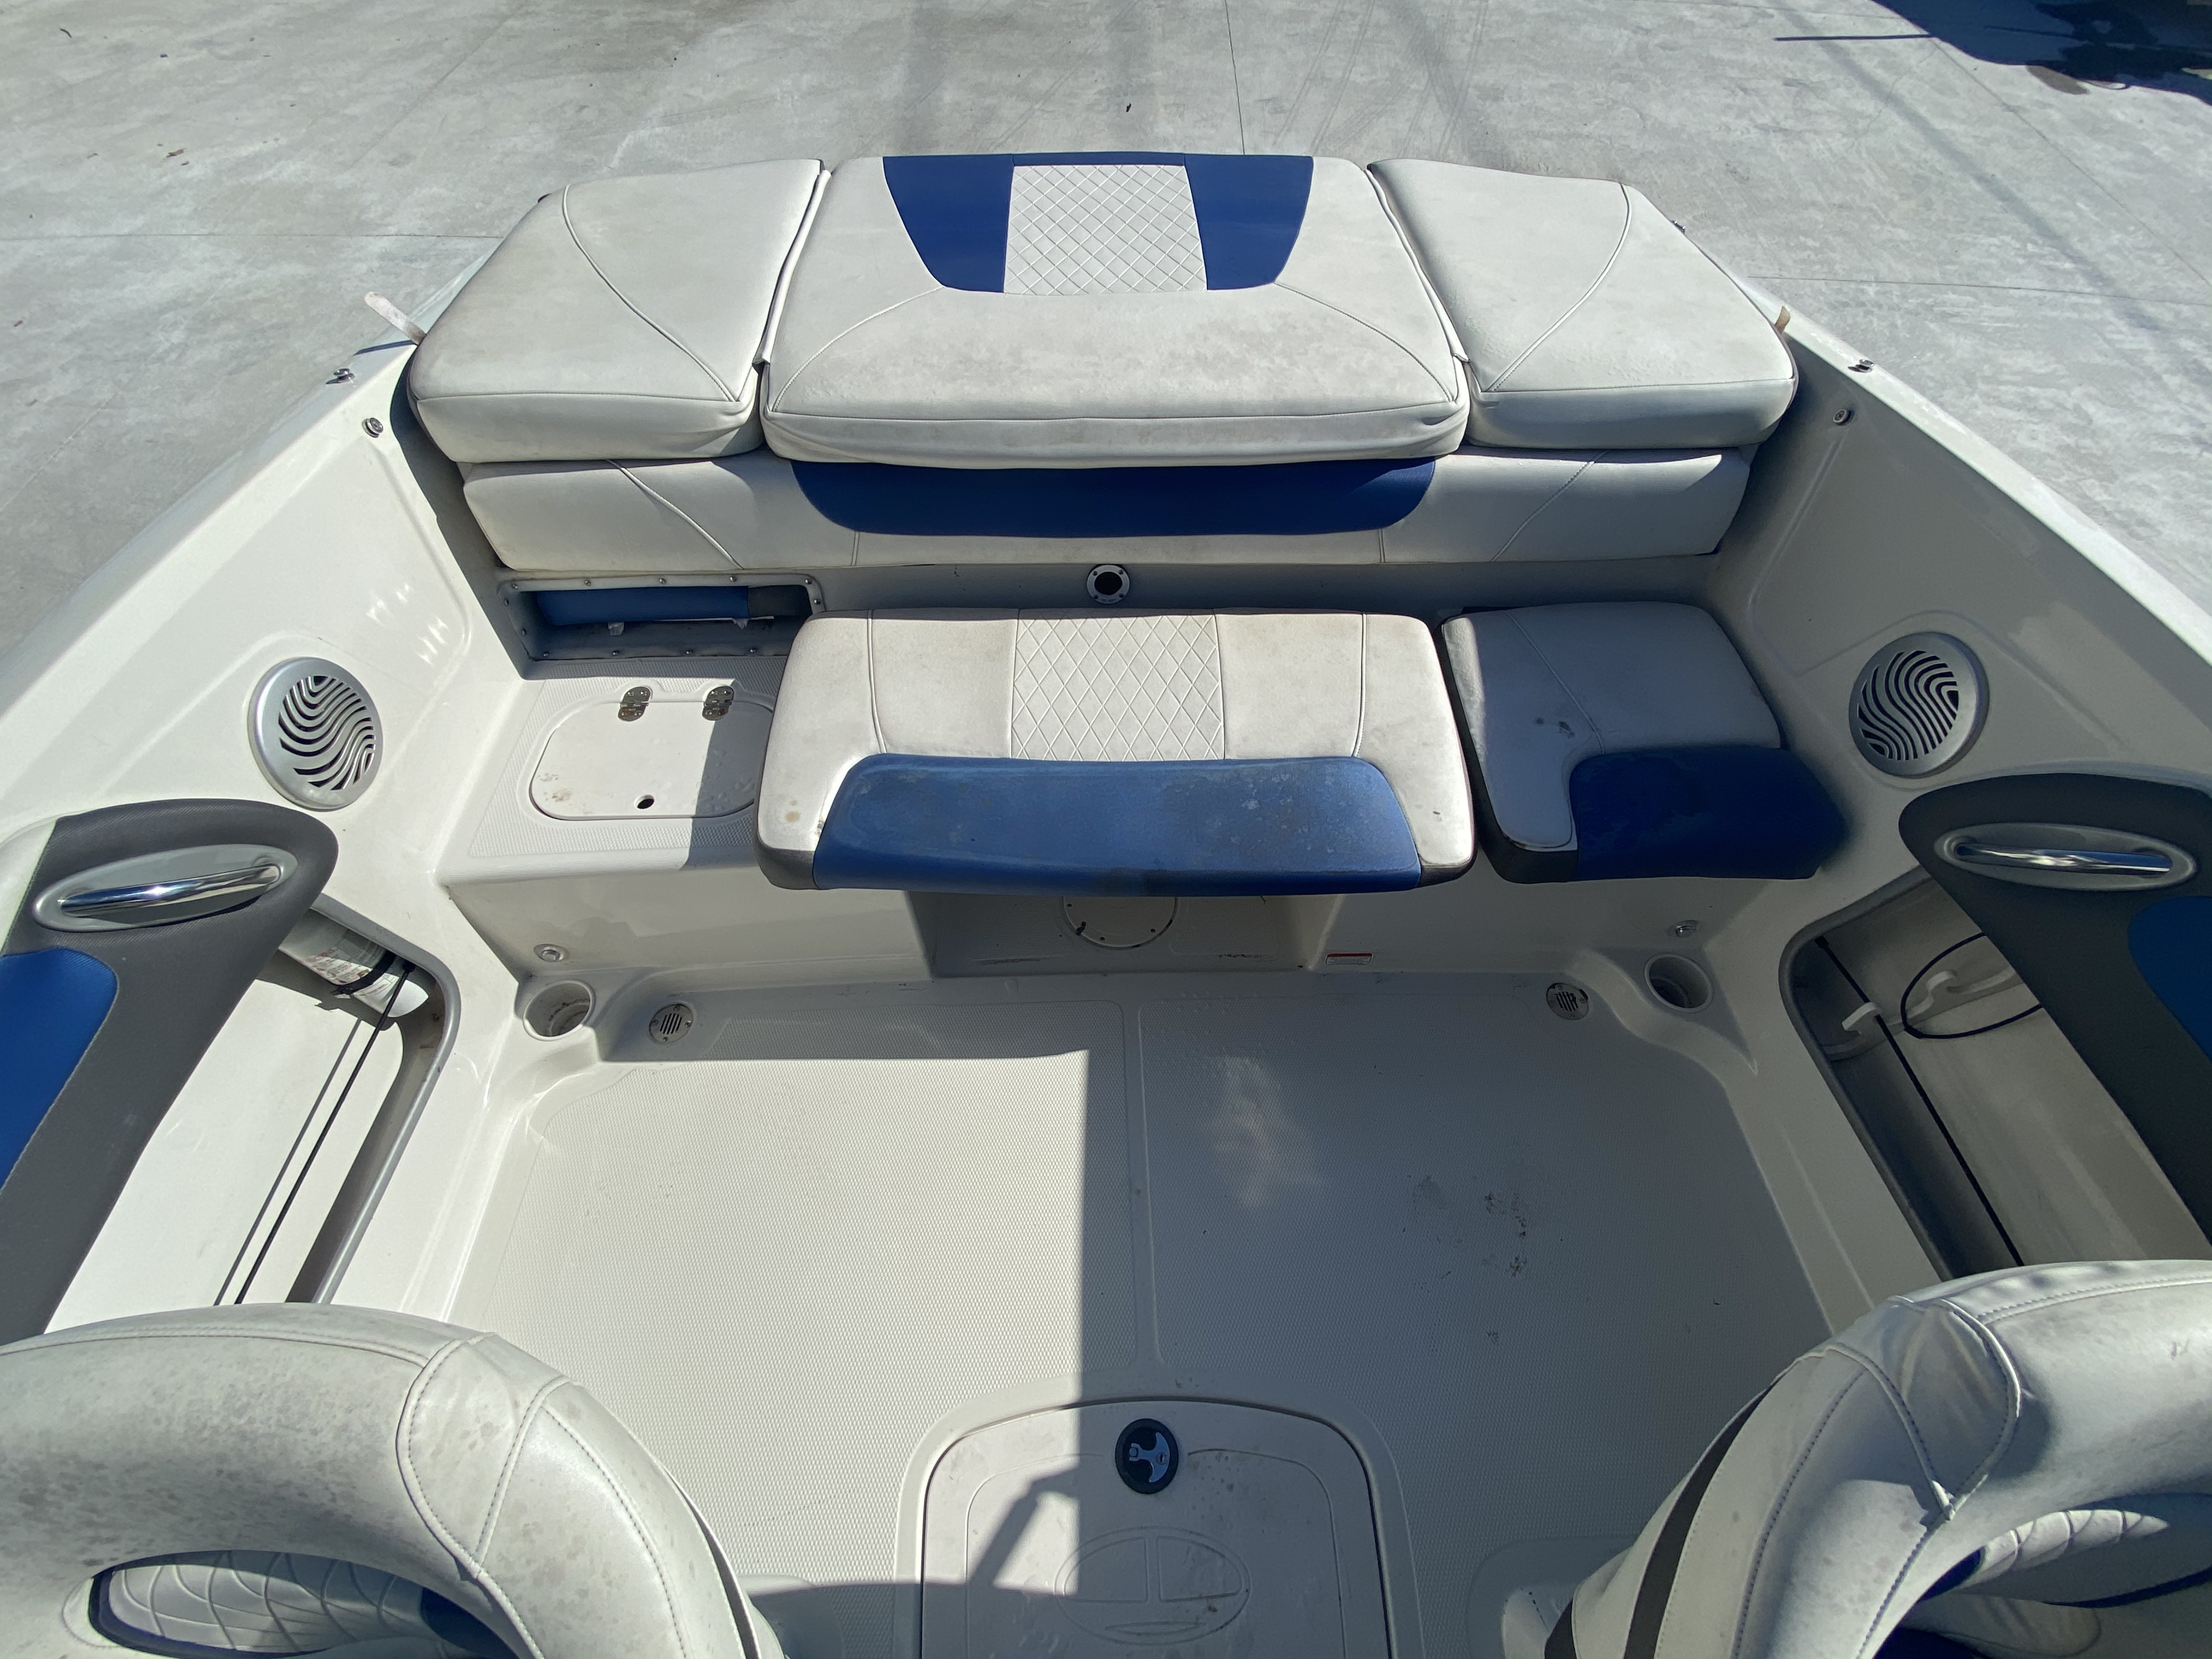 2015 Tahoe boat for sale, model of the boat is 500 TF & Image # 12 of 12